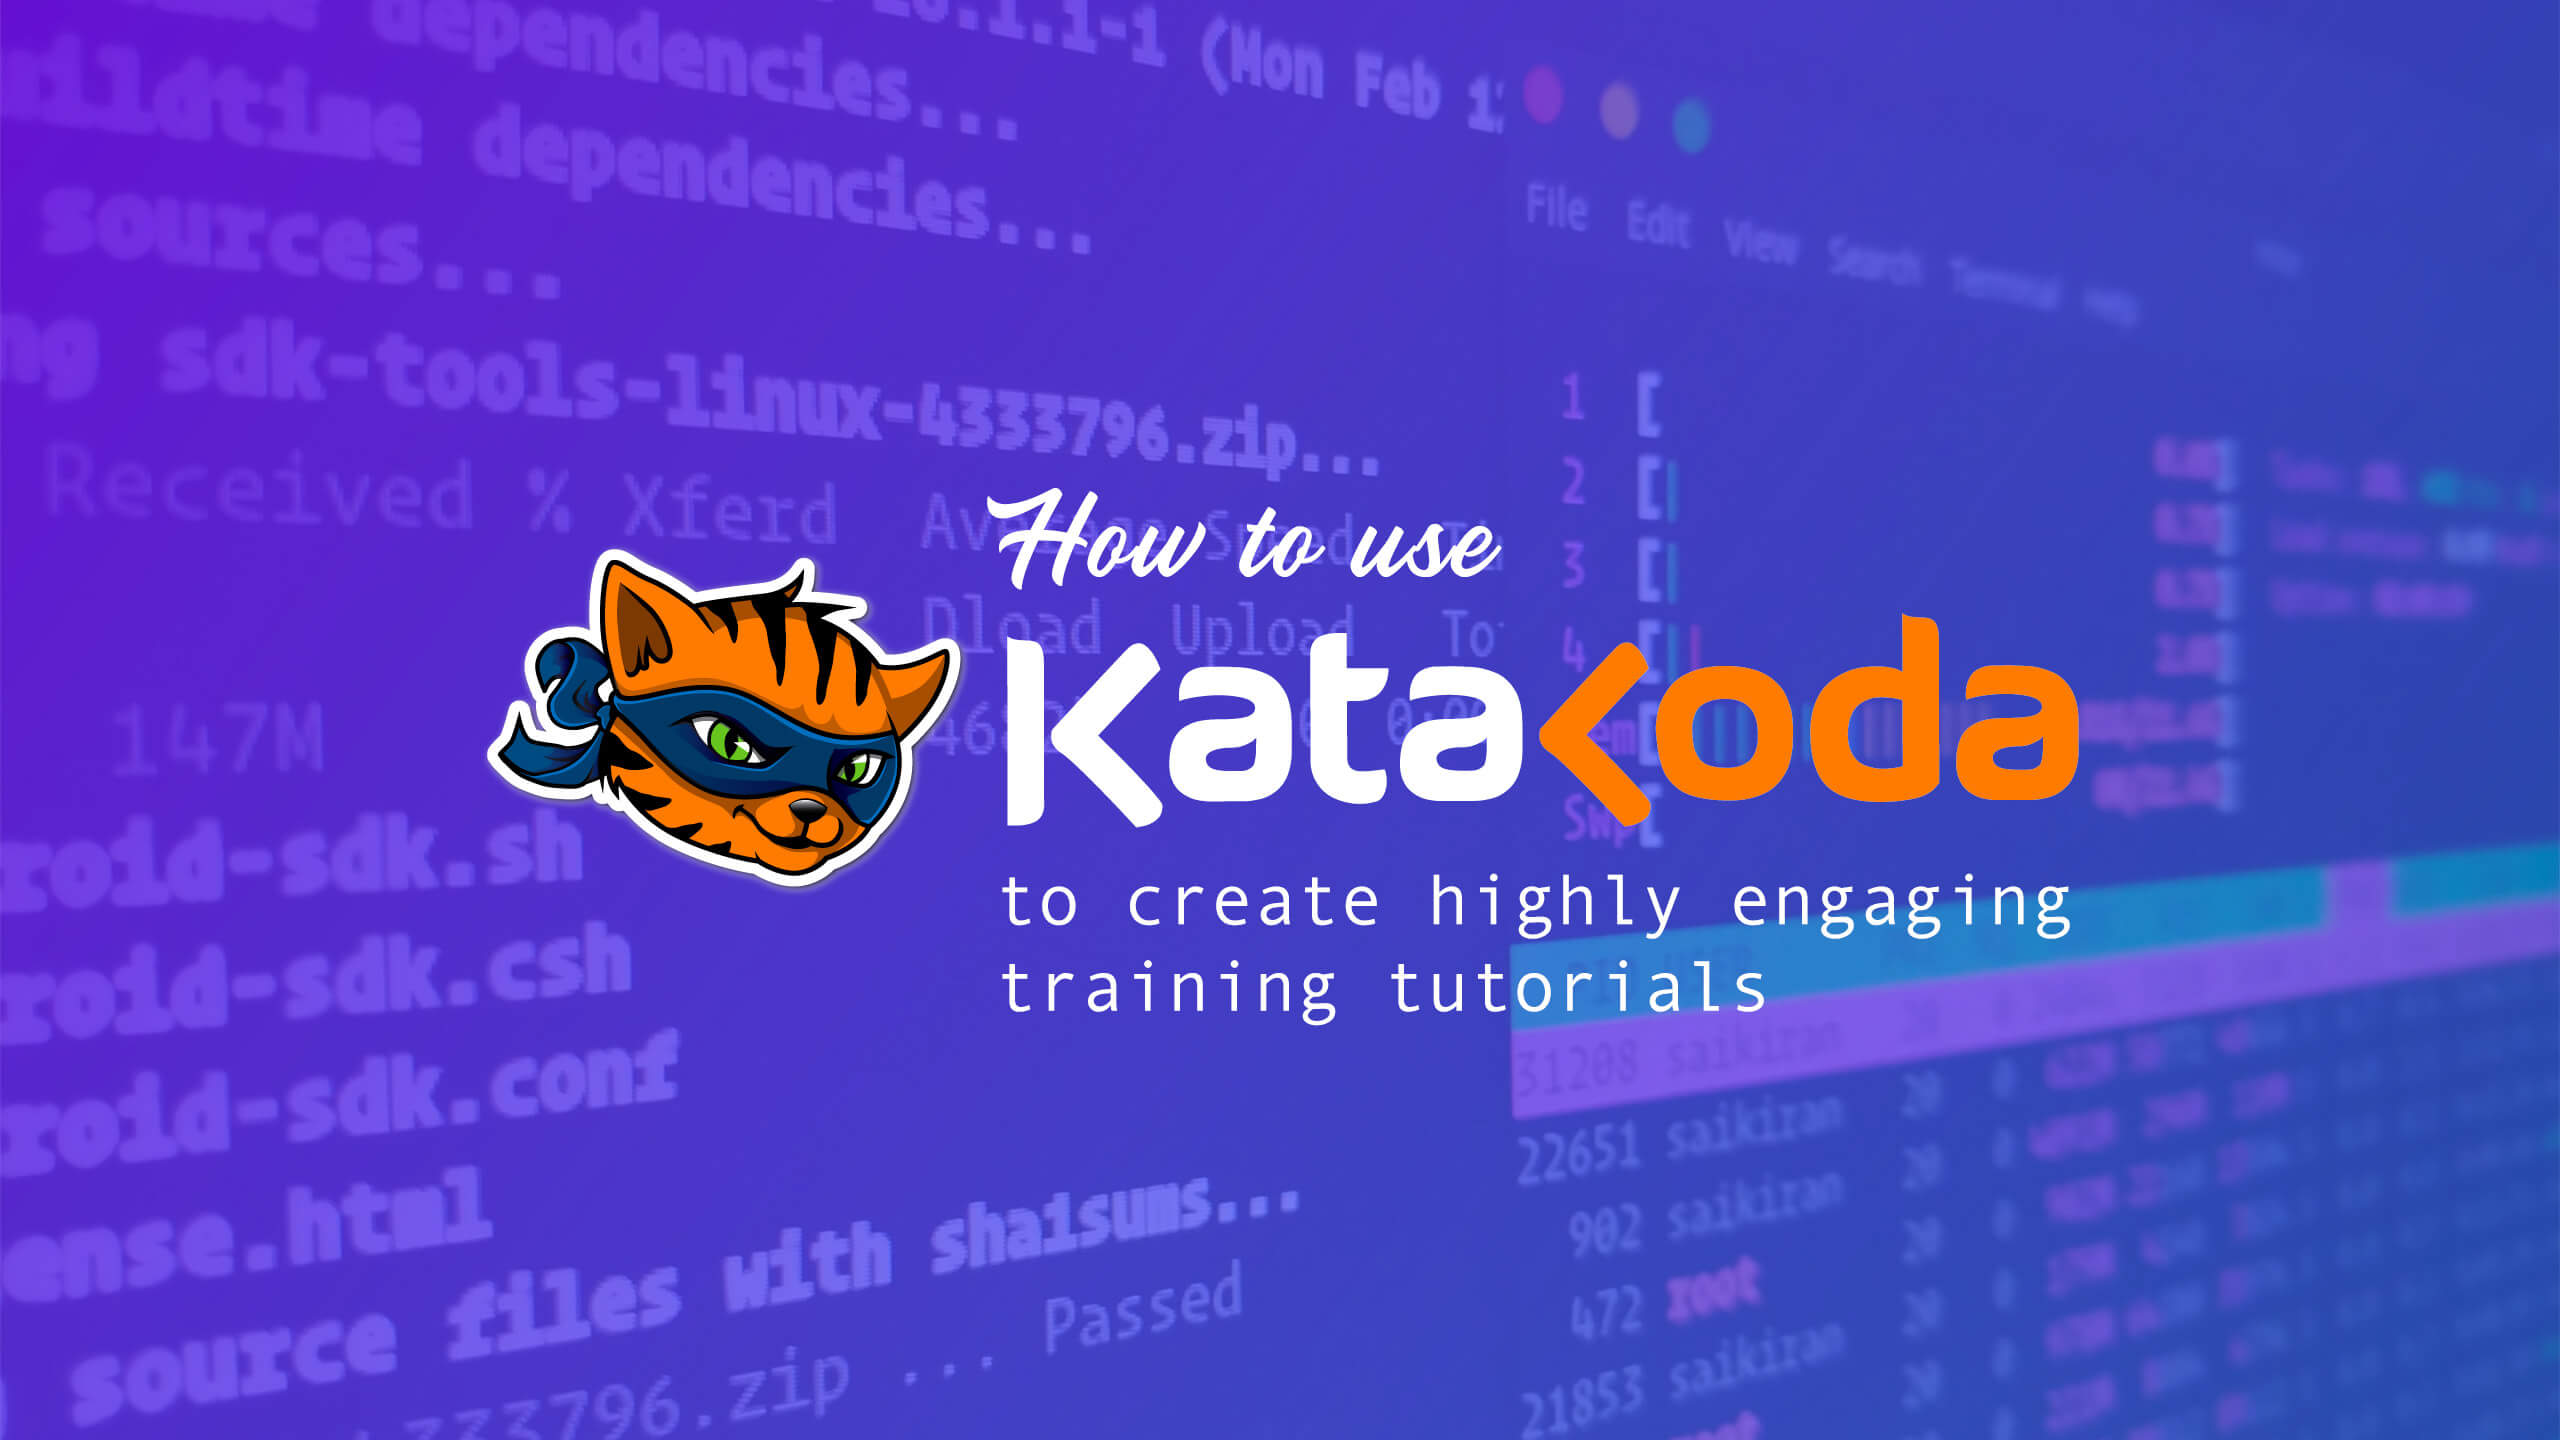 How to Use Katacoda to Create Highly Engaging Training Tutorials?